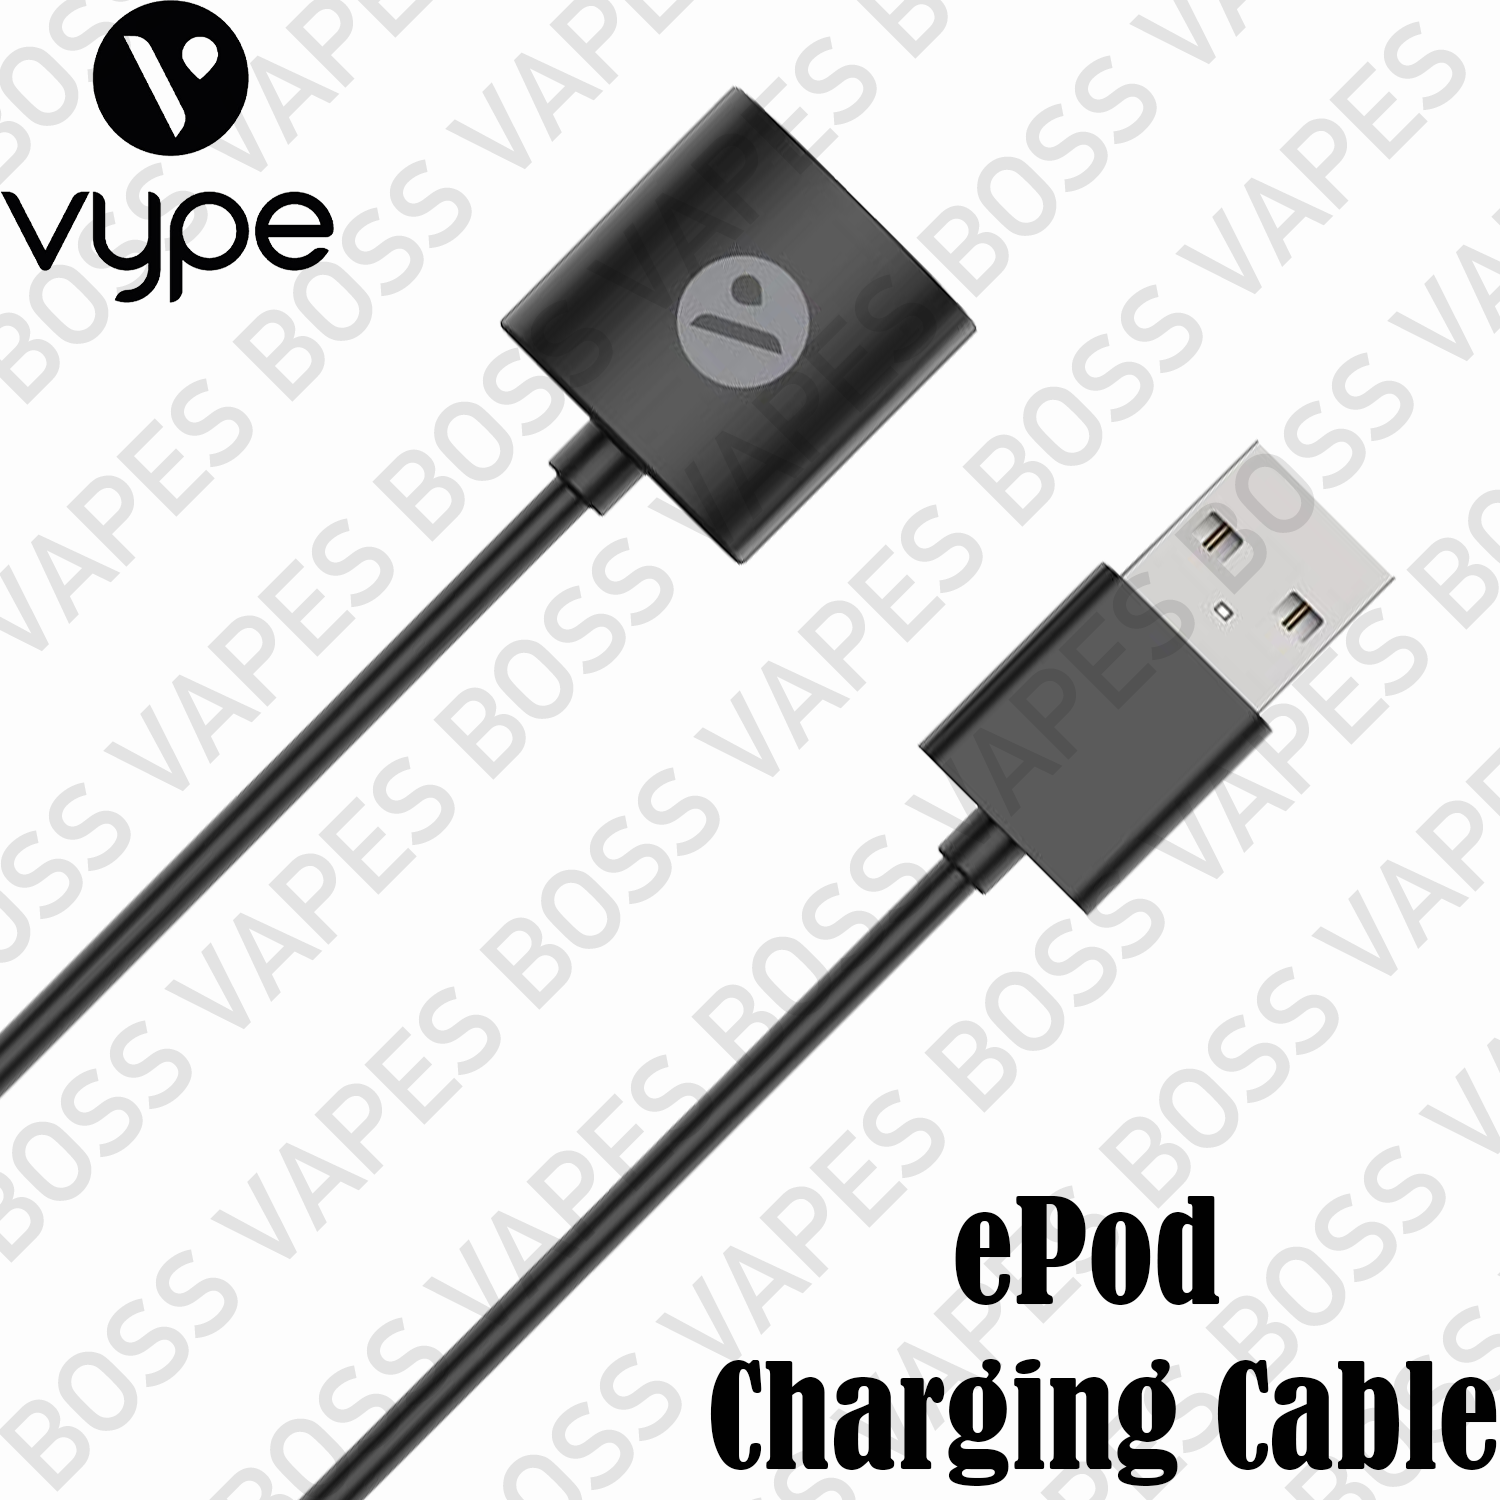 VYPE EPOD USB CHARGING CABLE - Boss Vapes